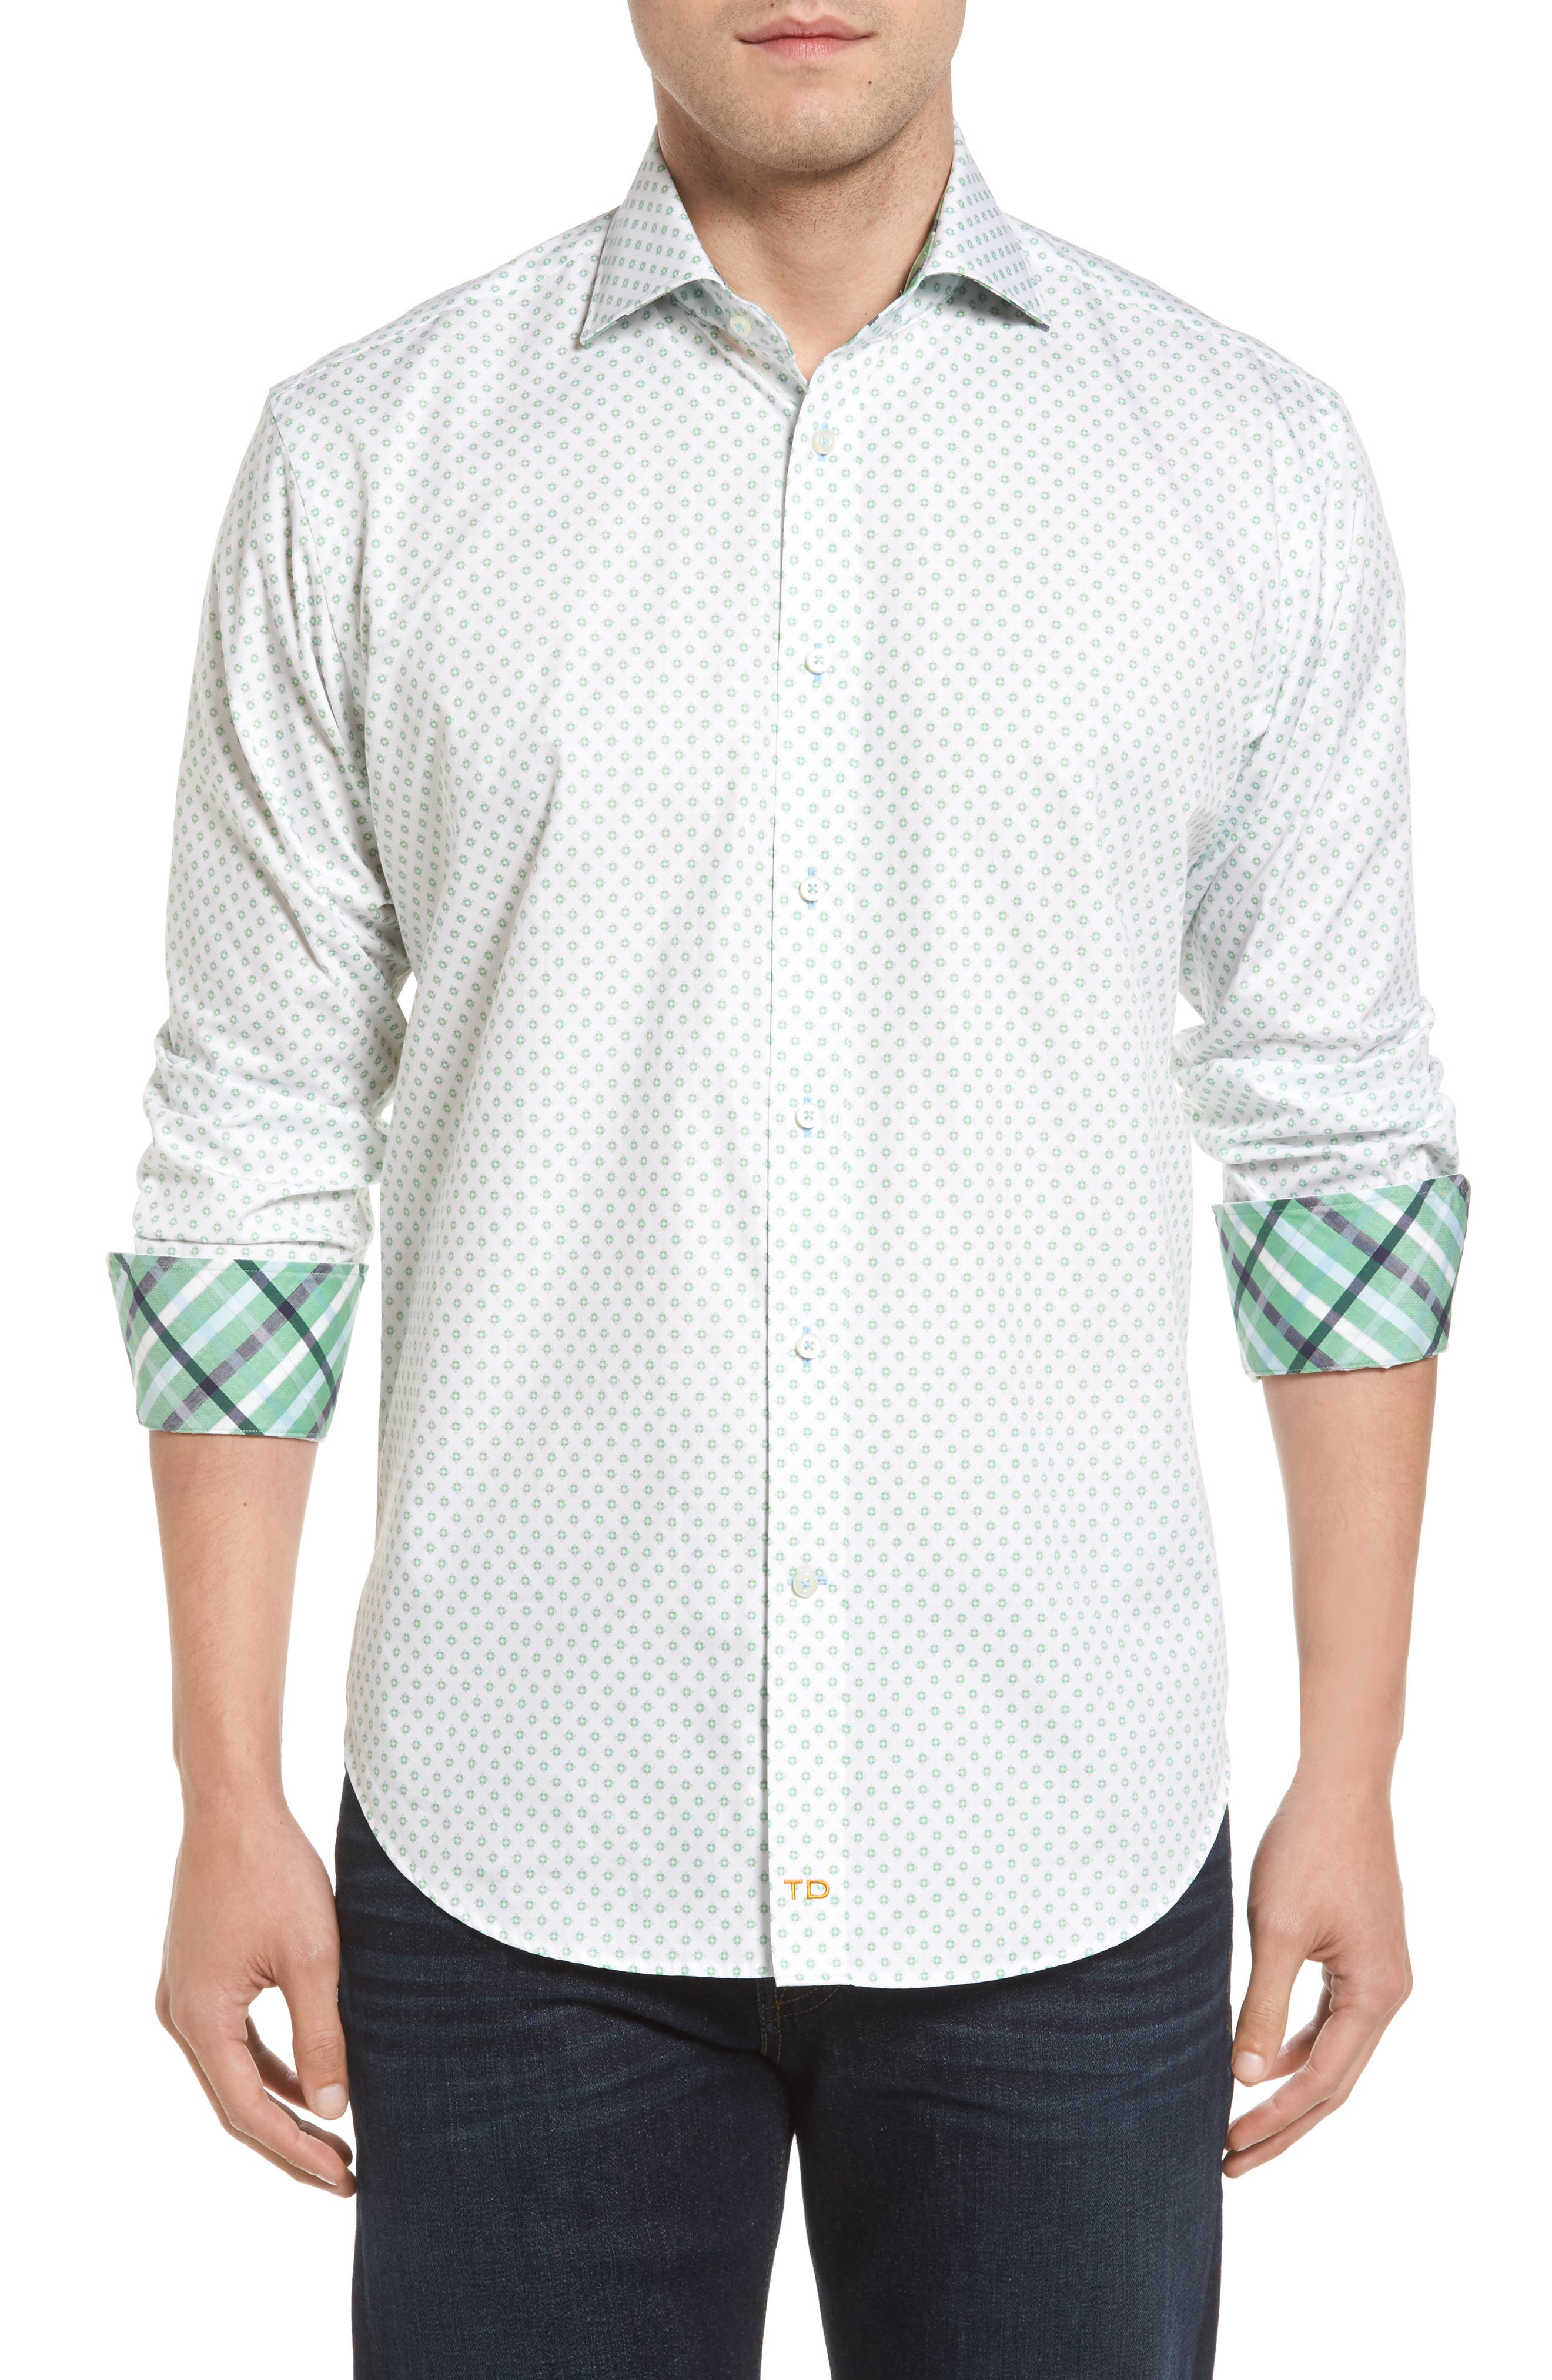 Alternate Image 1 Selected - Thomas Dean Classic Fit Neat Floral Print Sport Shirt